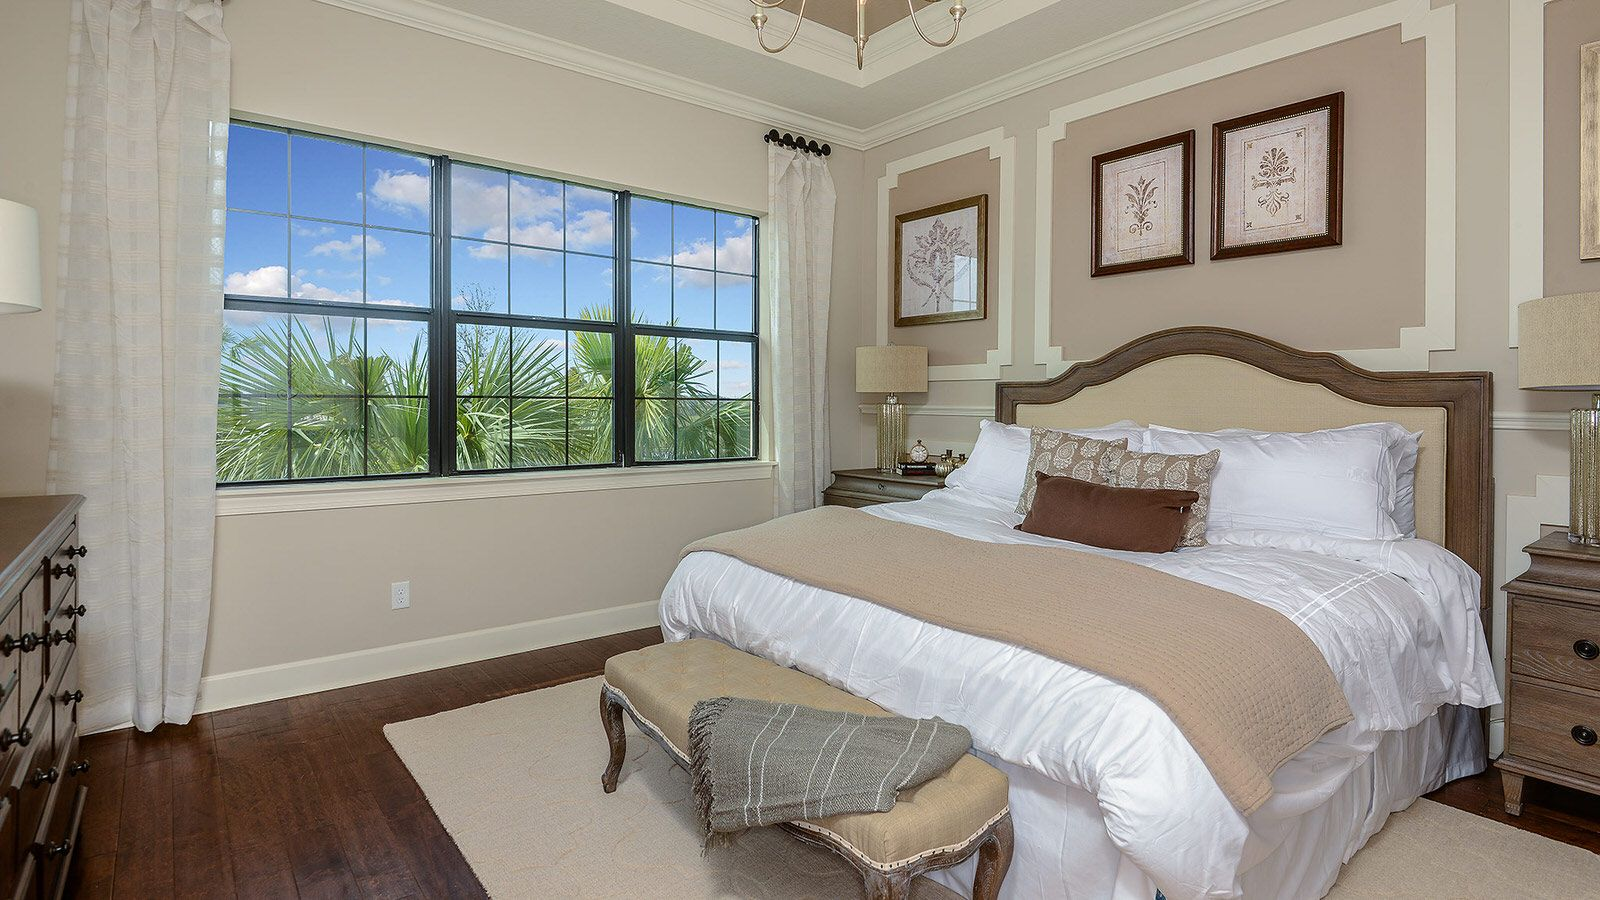 Bedroom featured in the Bellisimo VII Plan By Taylor Morrison in Naples, FL